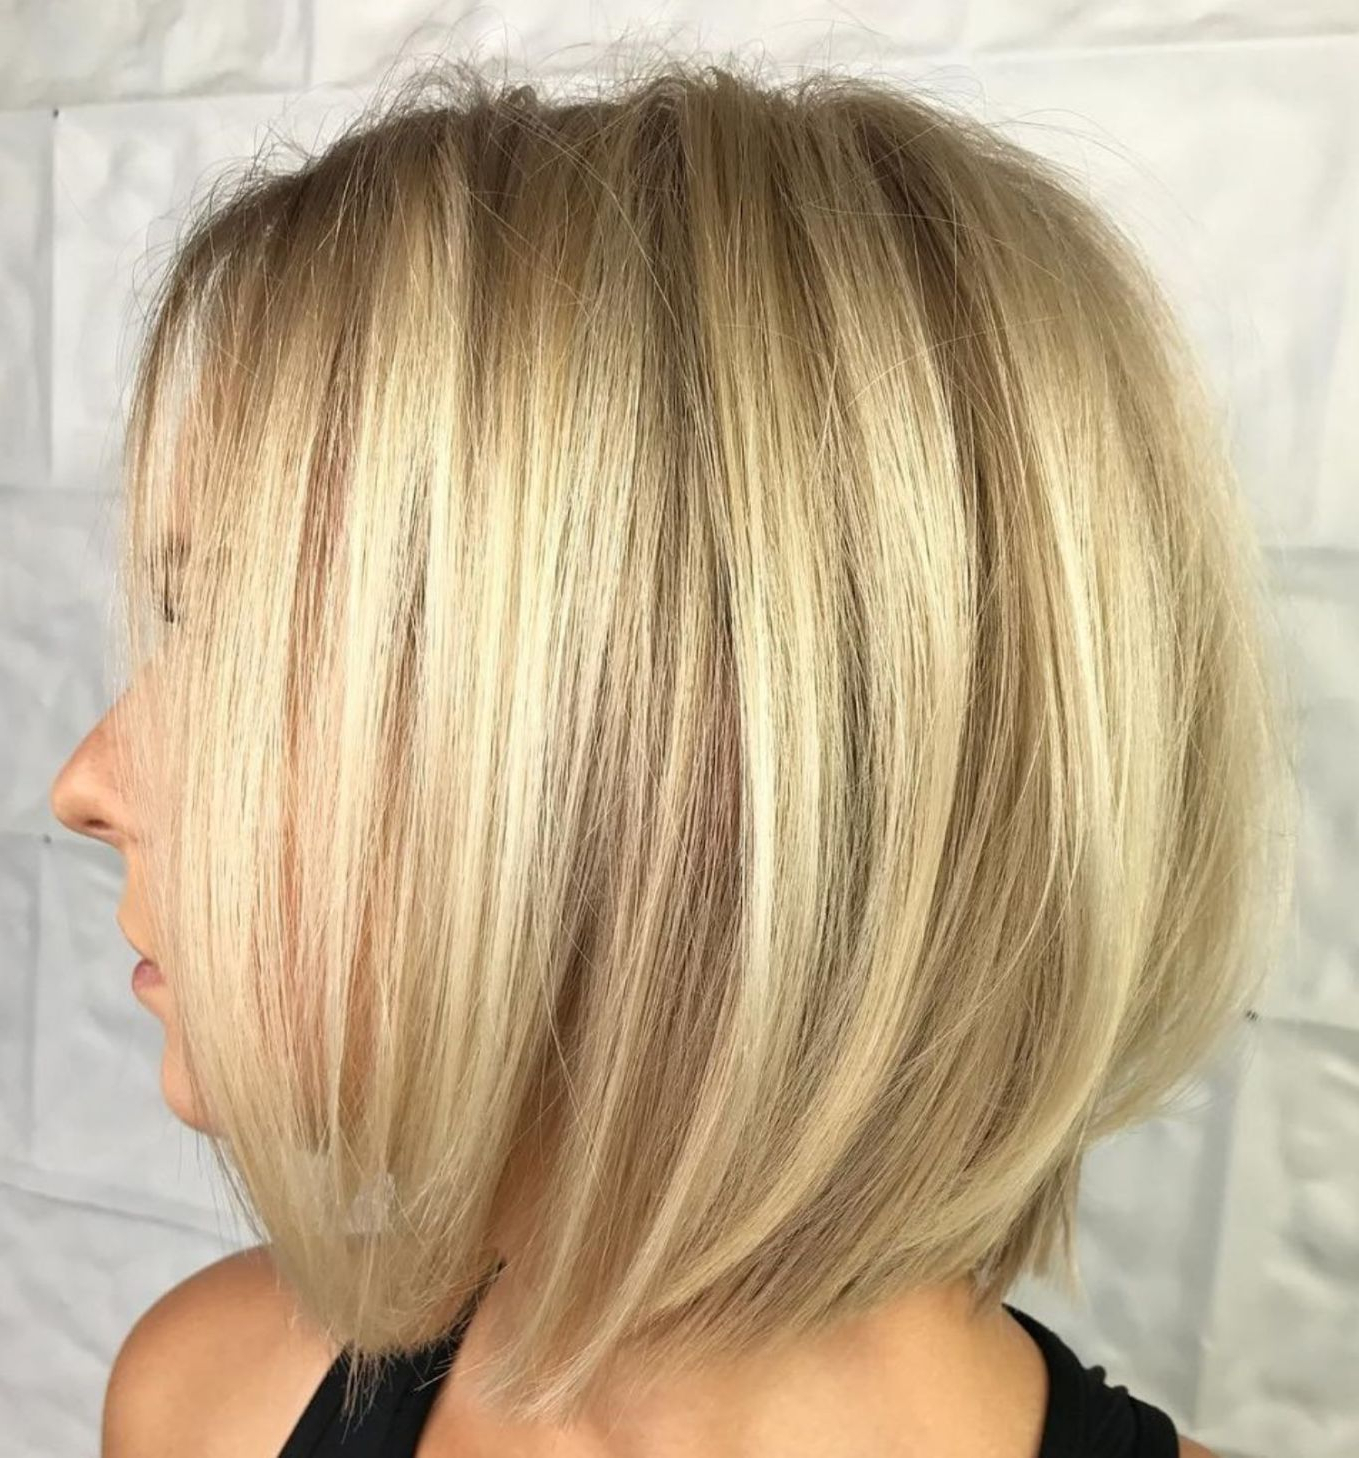 60 Beautiful And Convenient Medium Bob Hairstyles In 2019 (Gallery 8 of 20)